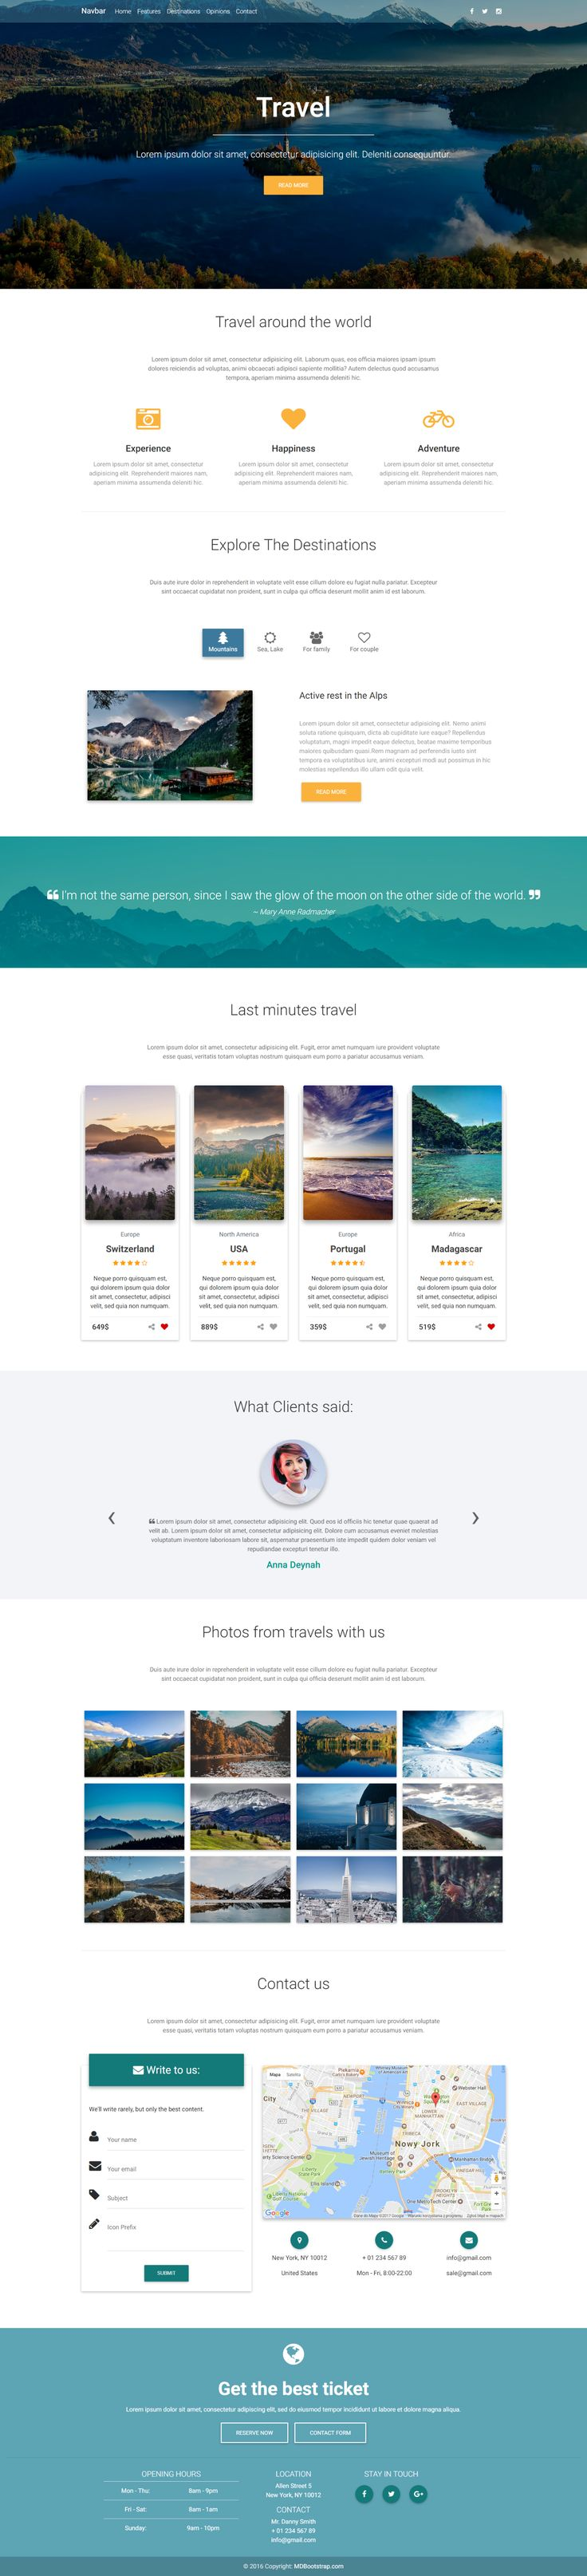 Travel Landing Page Template, created in Material Design spirit